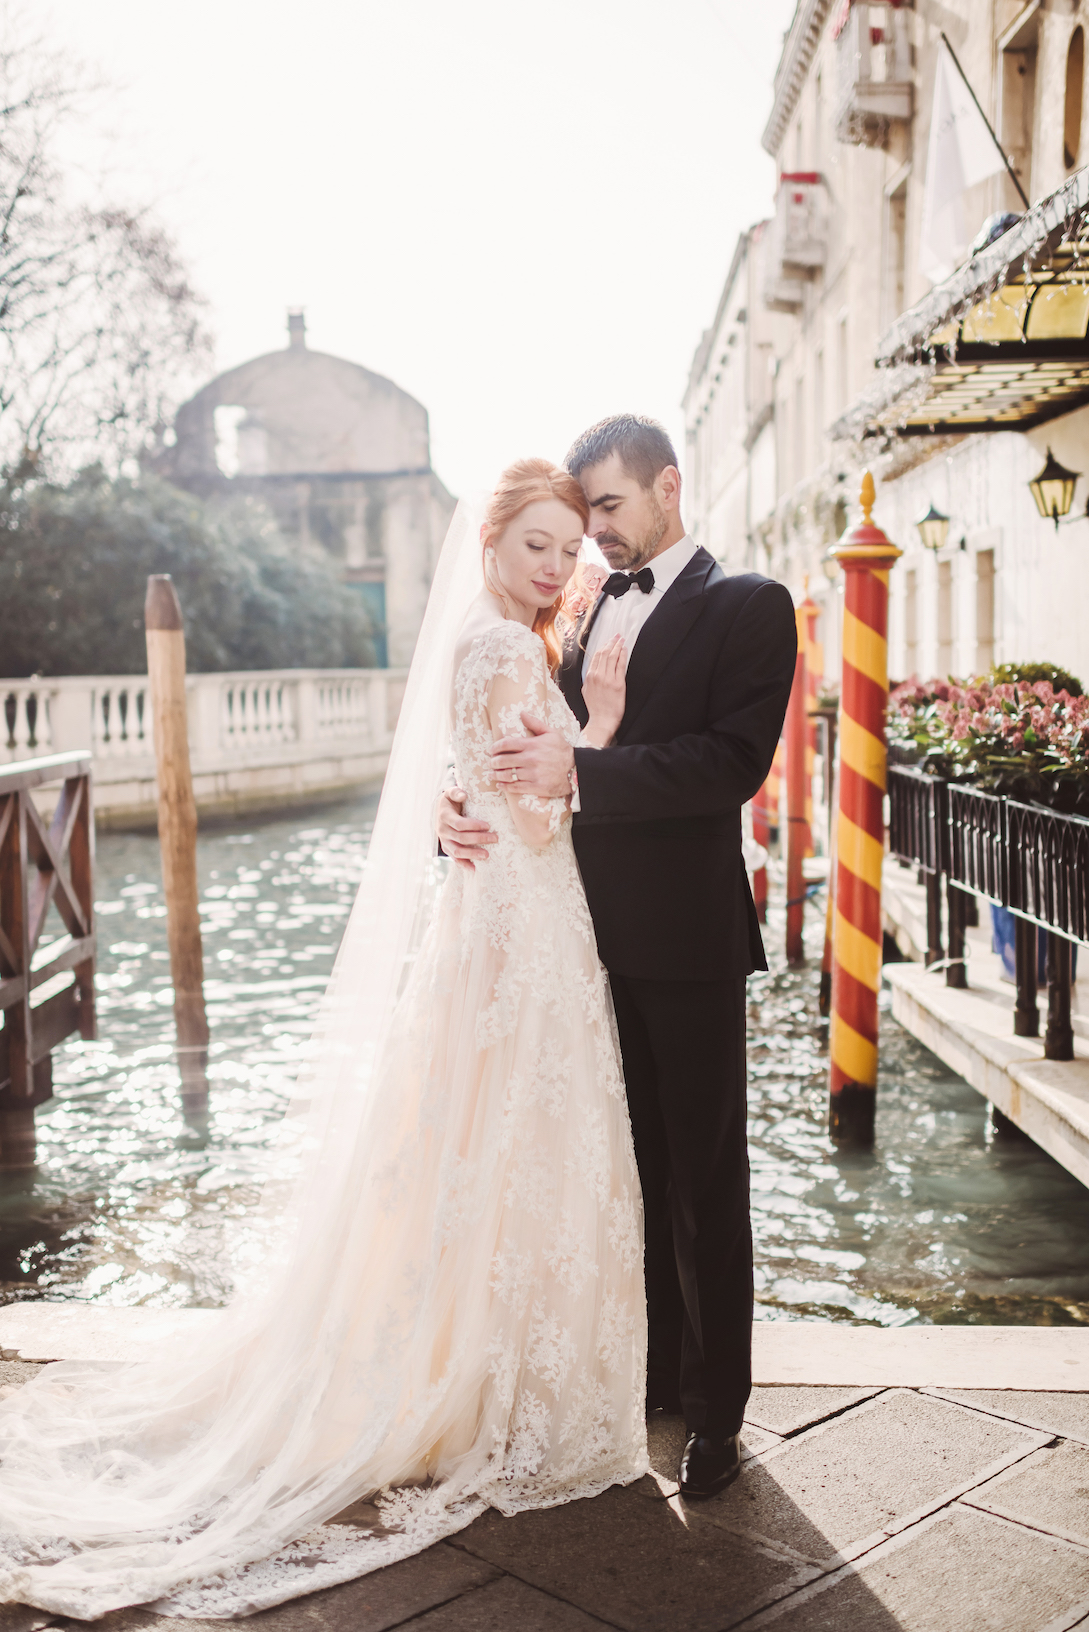 Venice-Wedding-photography-matej-trasak-14.jpg